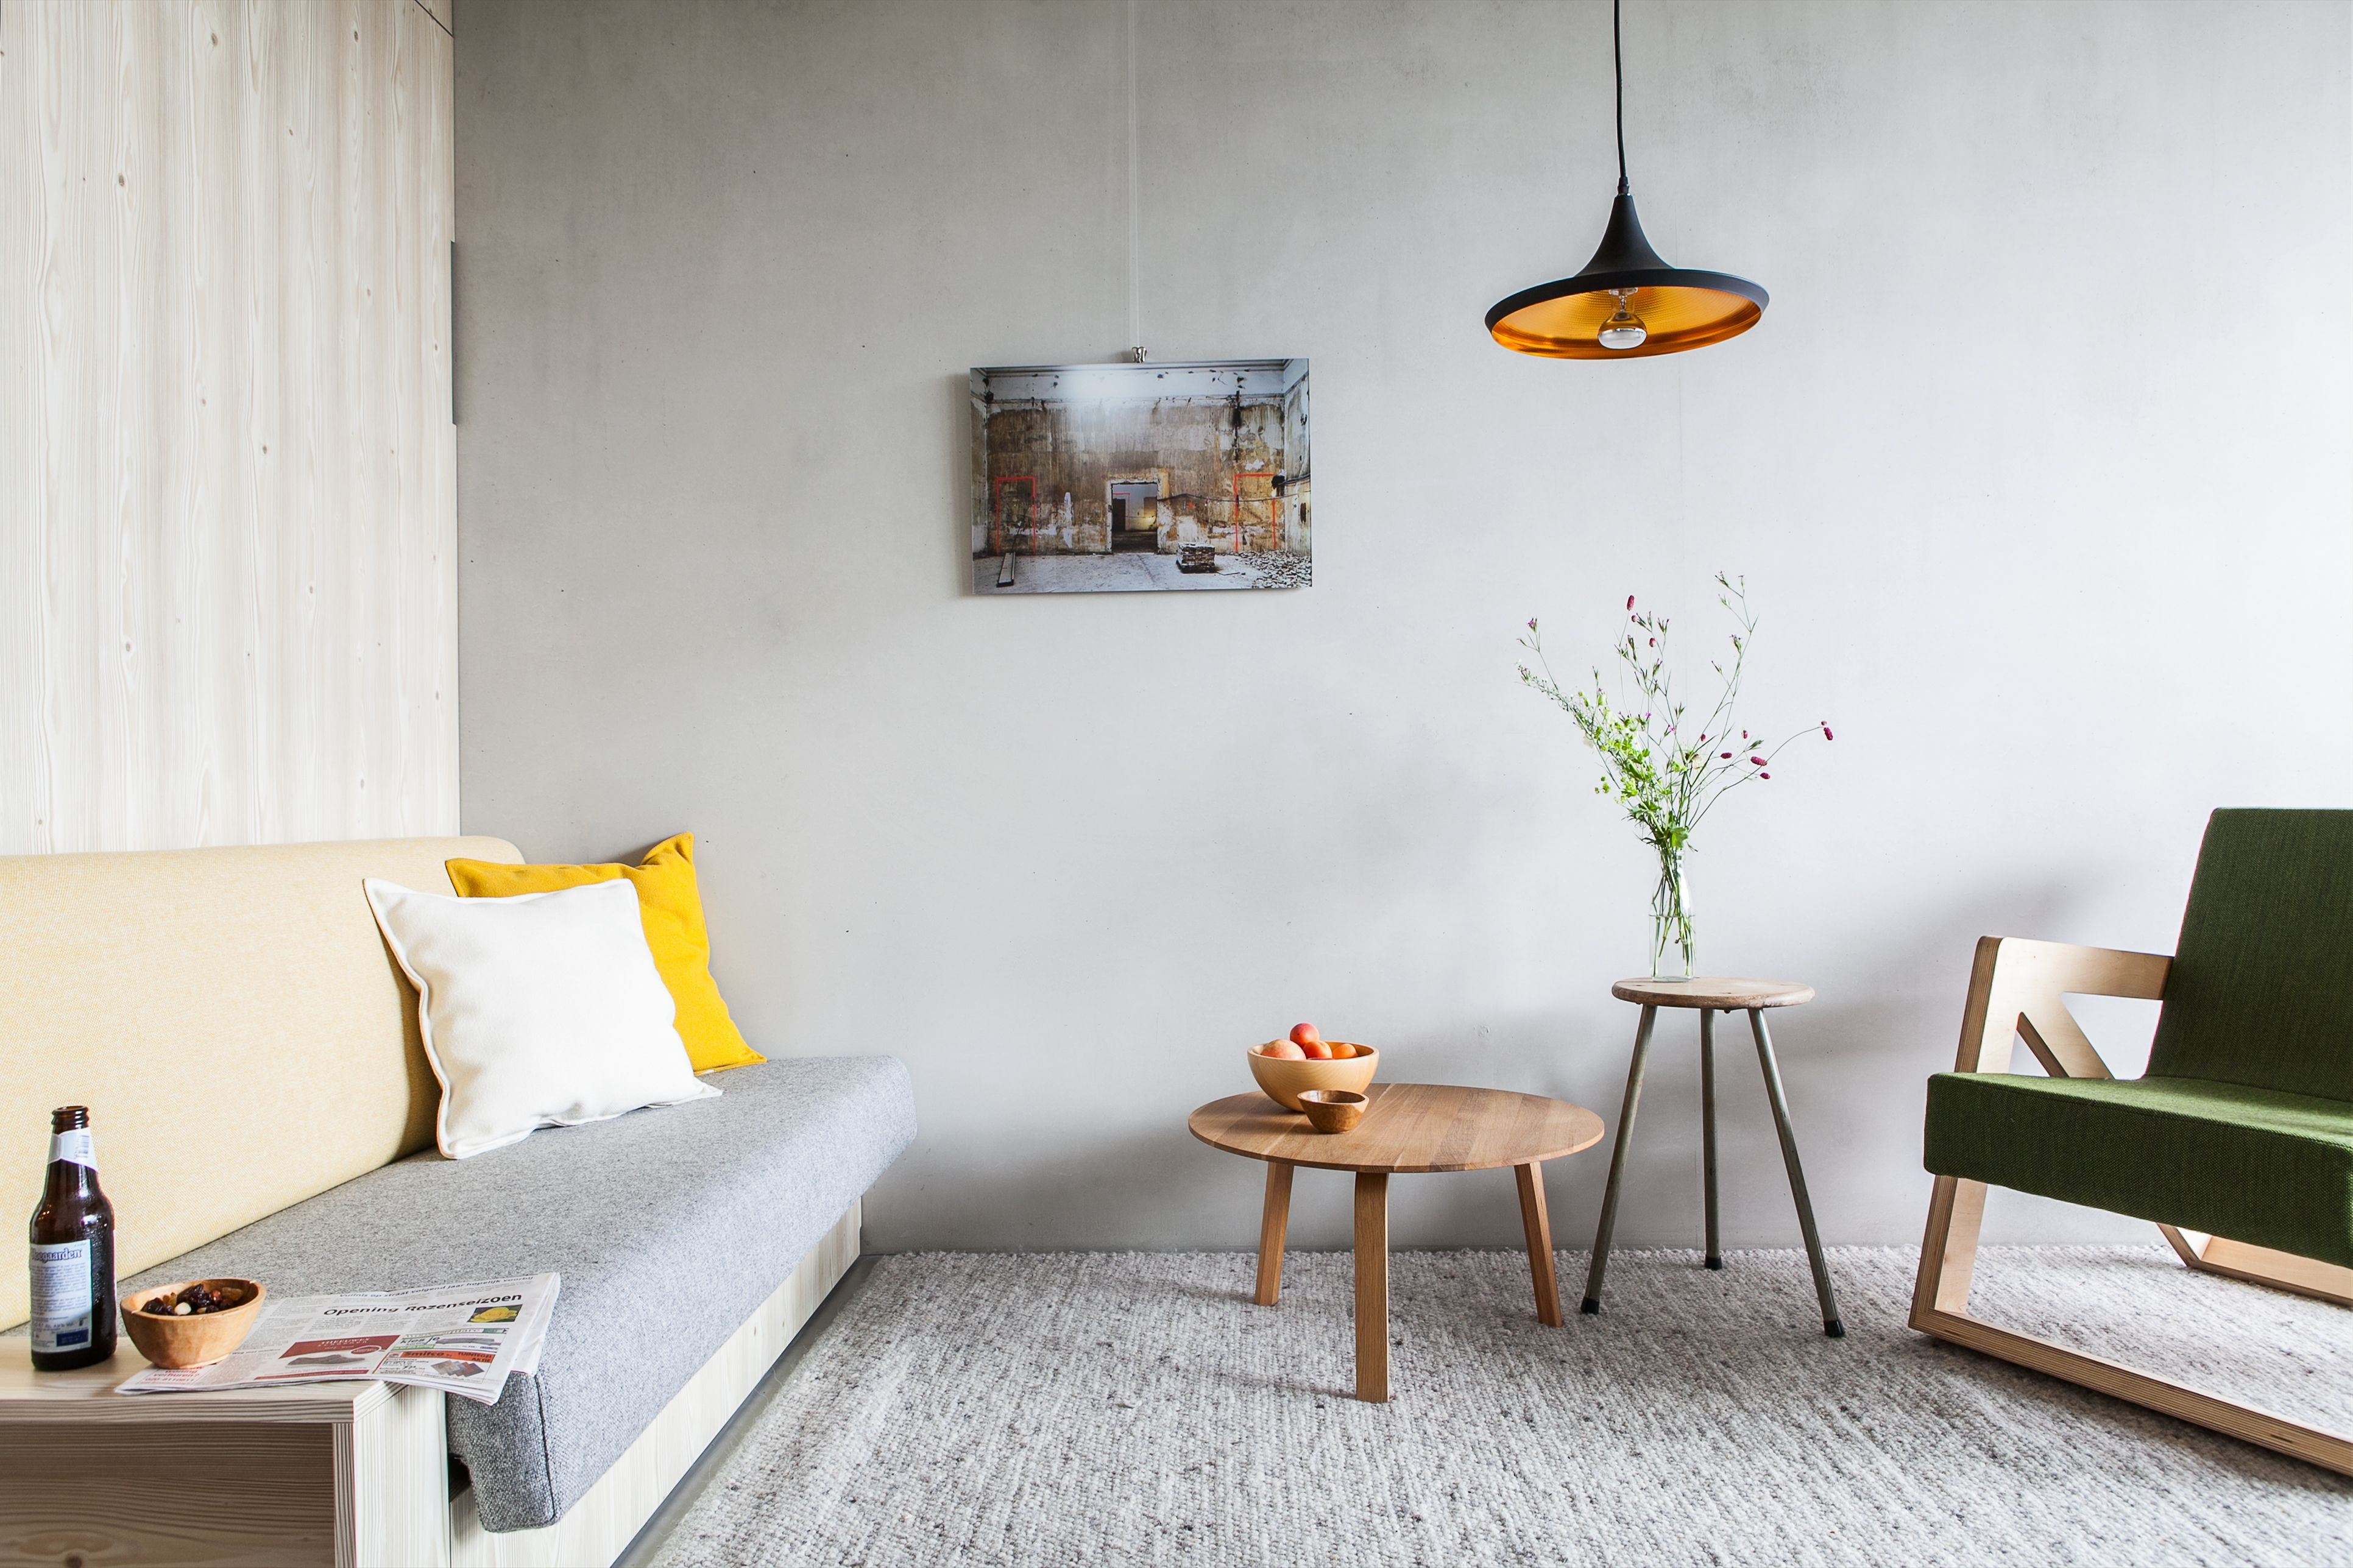 Fully equipped apartments in Amsterdam ready on the 1st of december 2016.